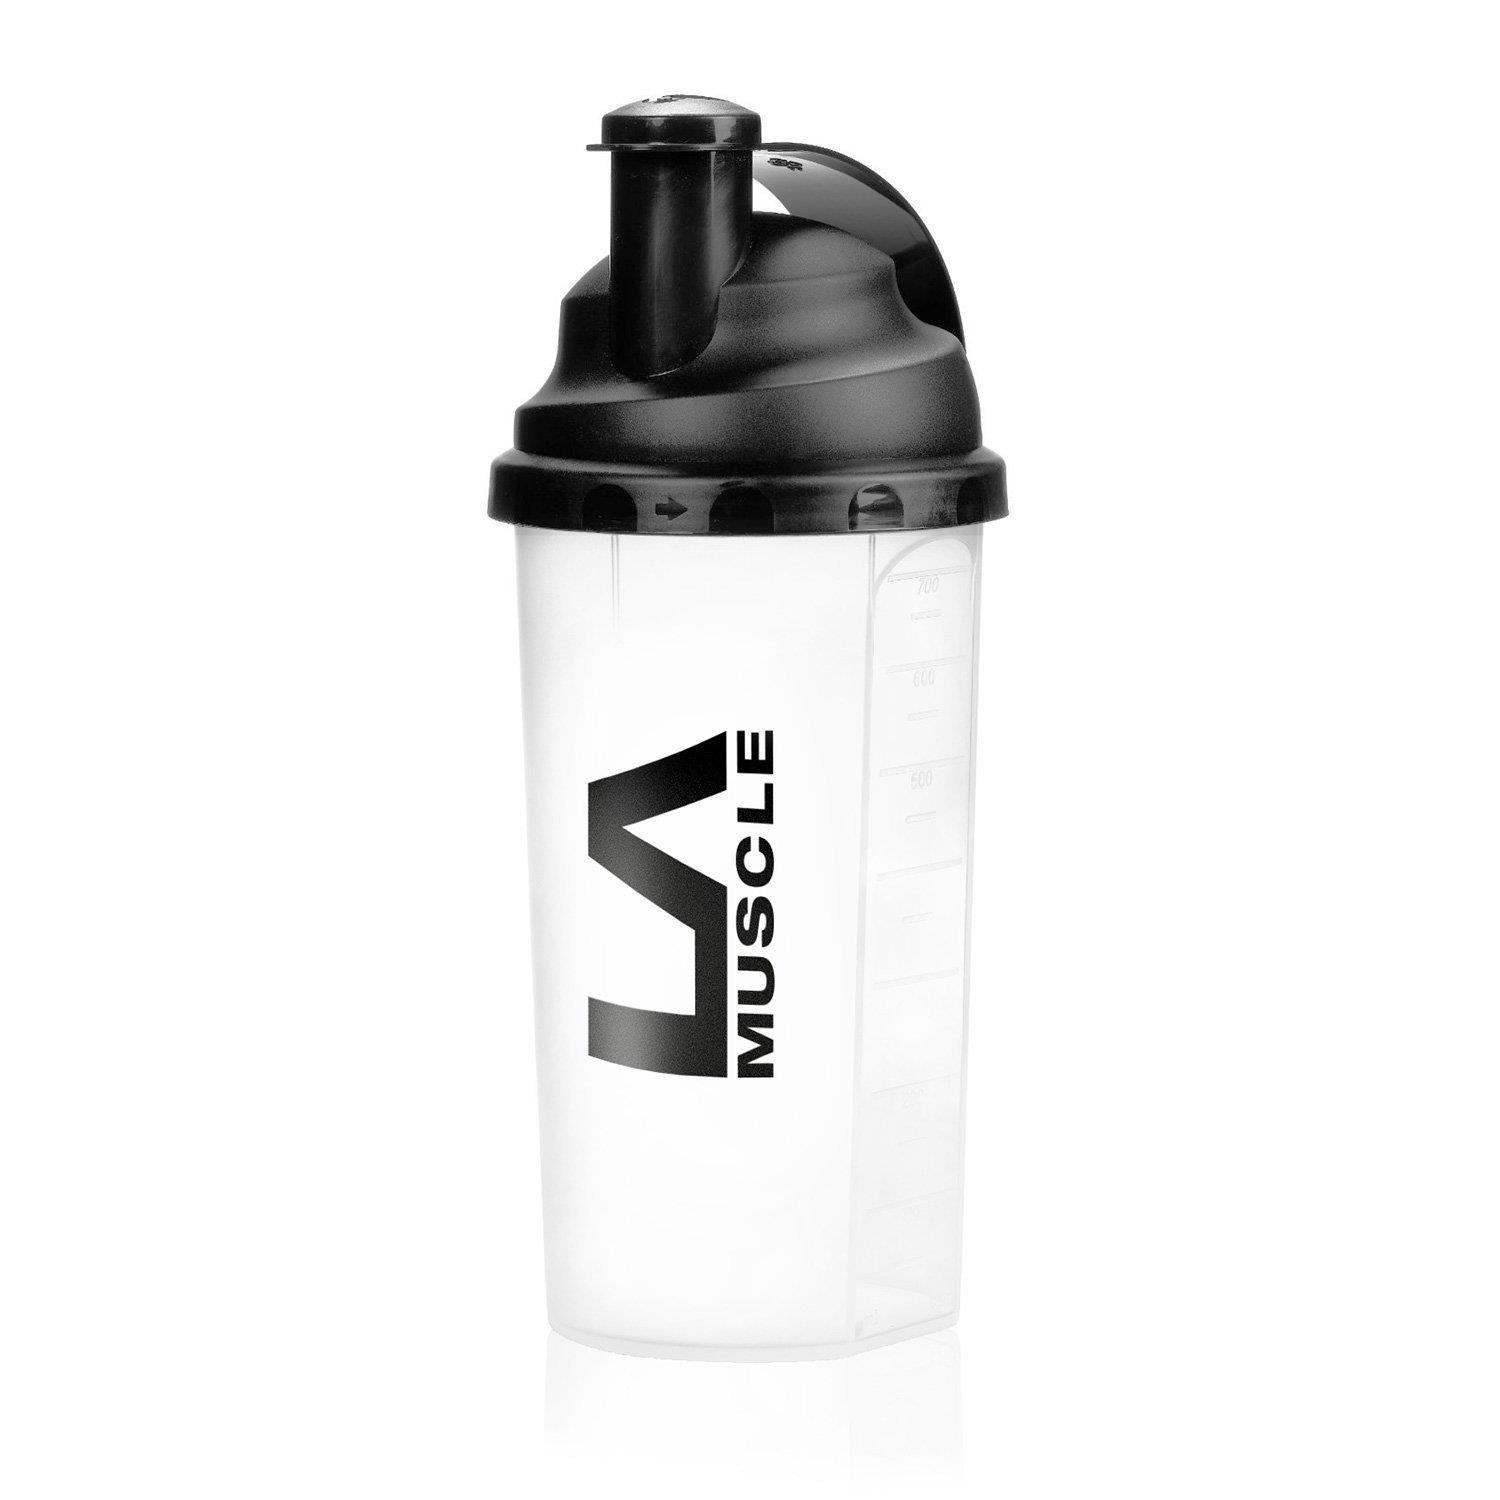 Plastic Cup Protein Shaker Bottle